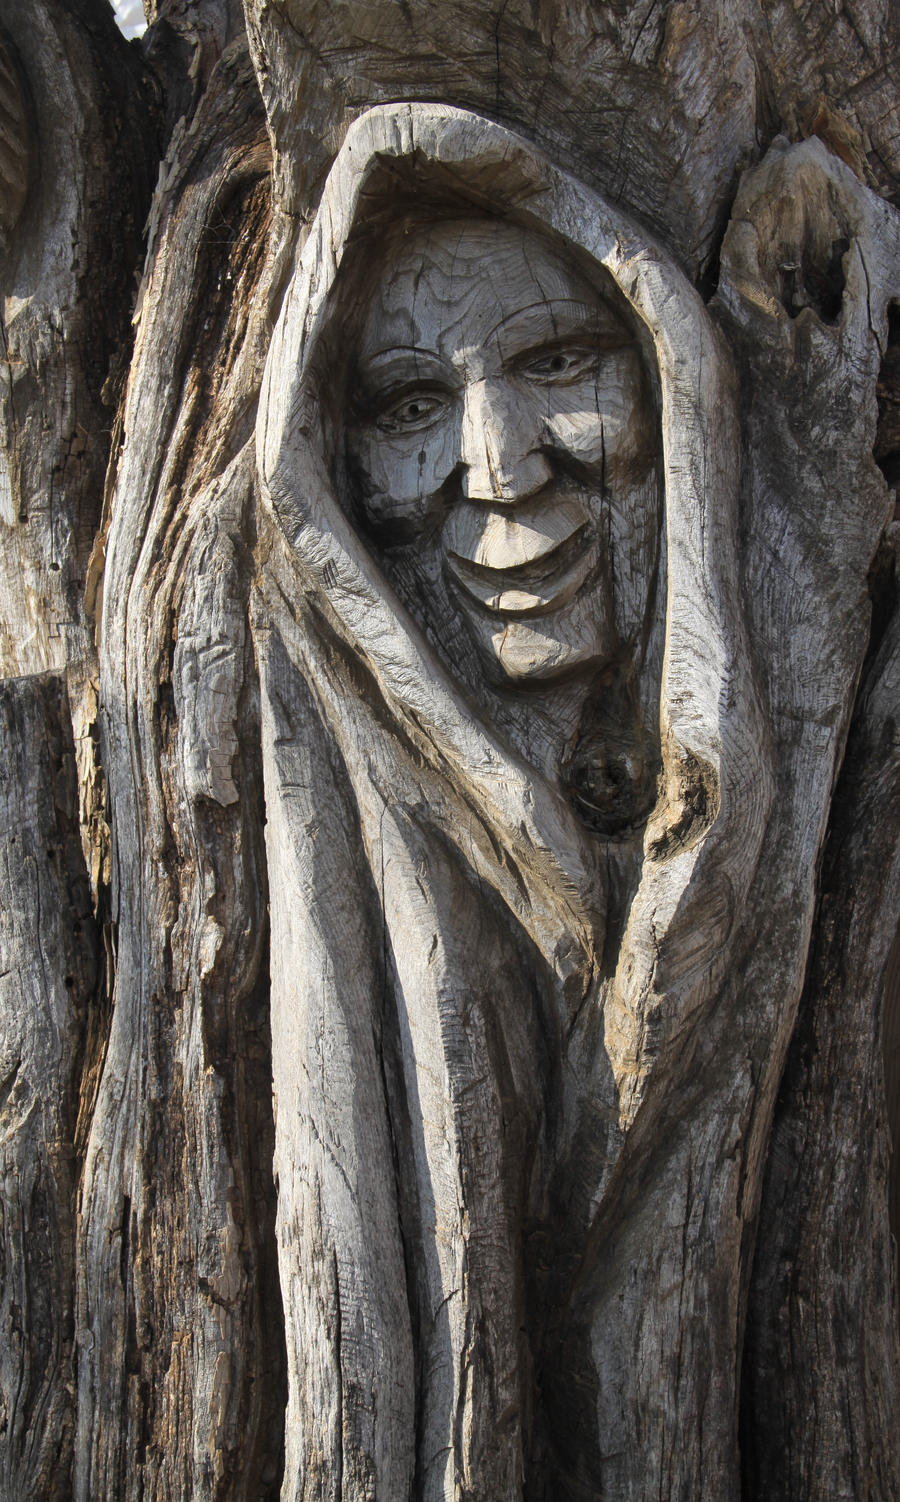 Carved tree face by idnurse on deviantart